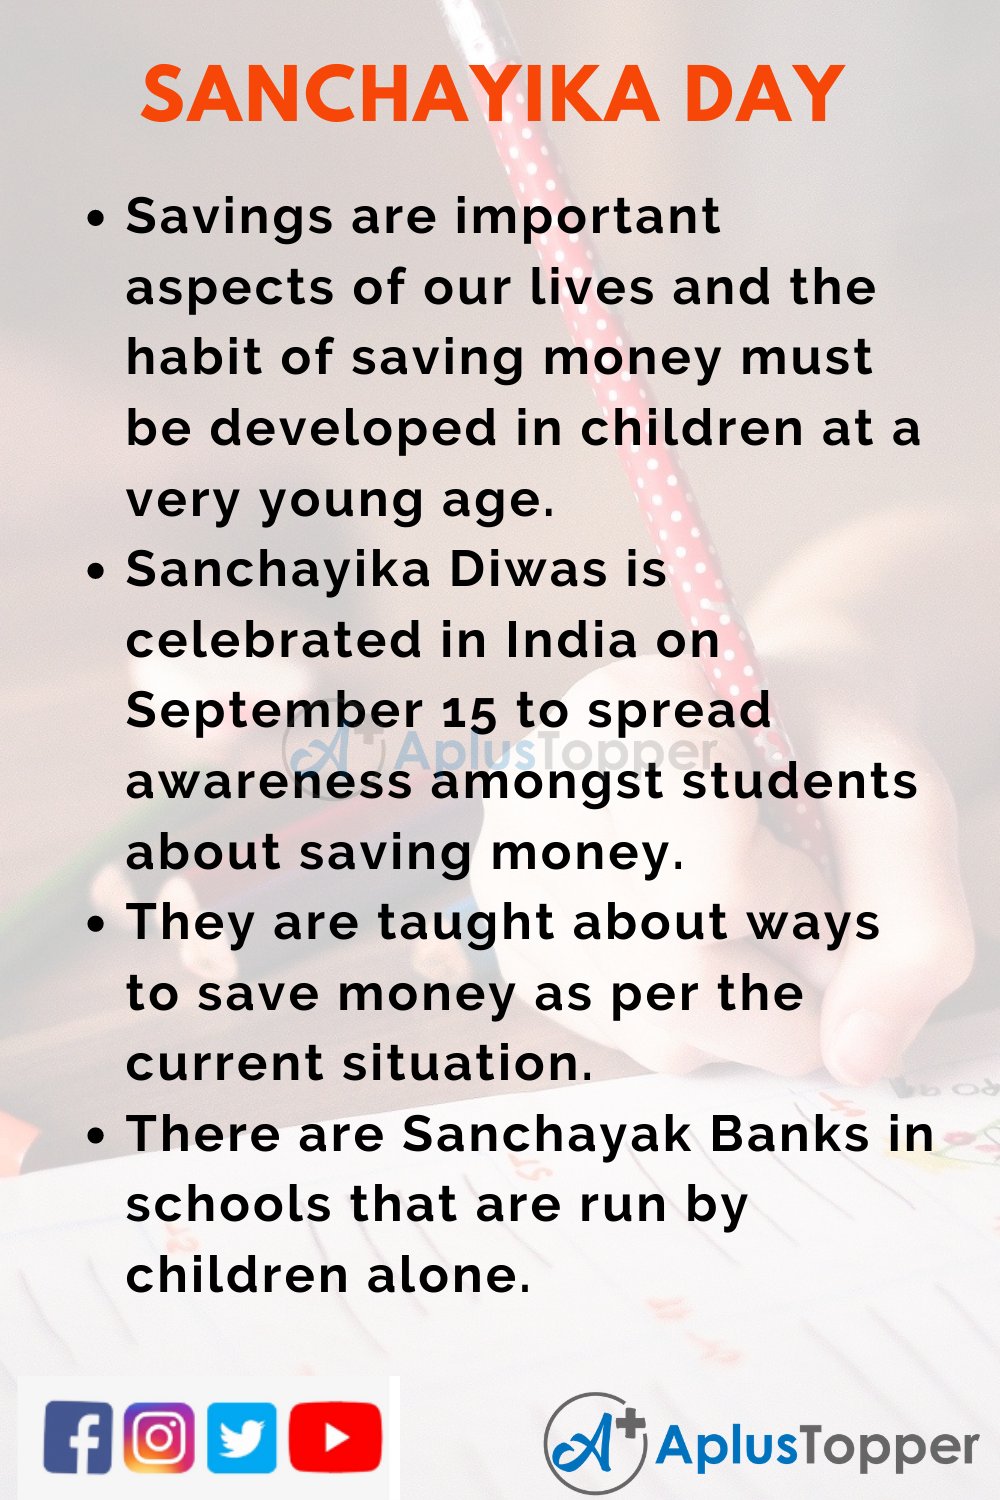 10 Lines on Sanchayika Day for Higher Class Students